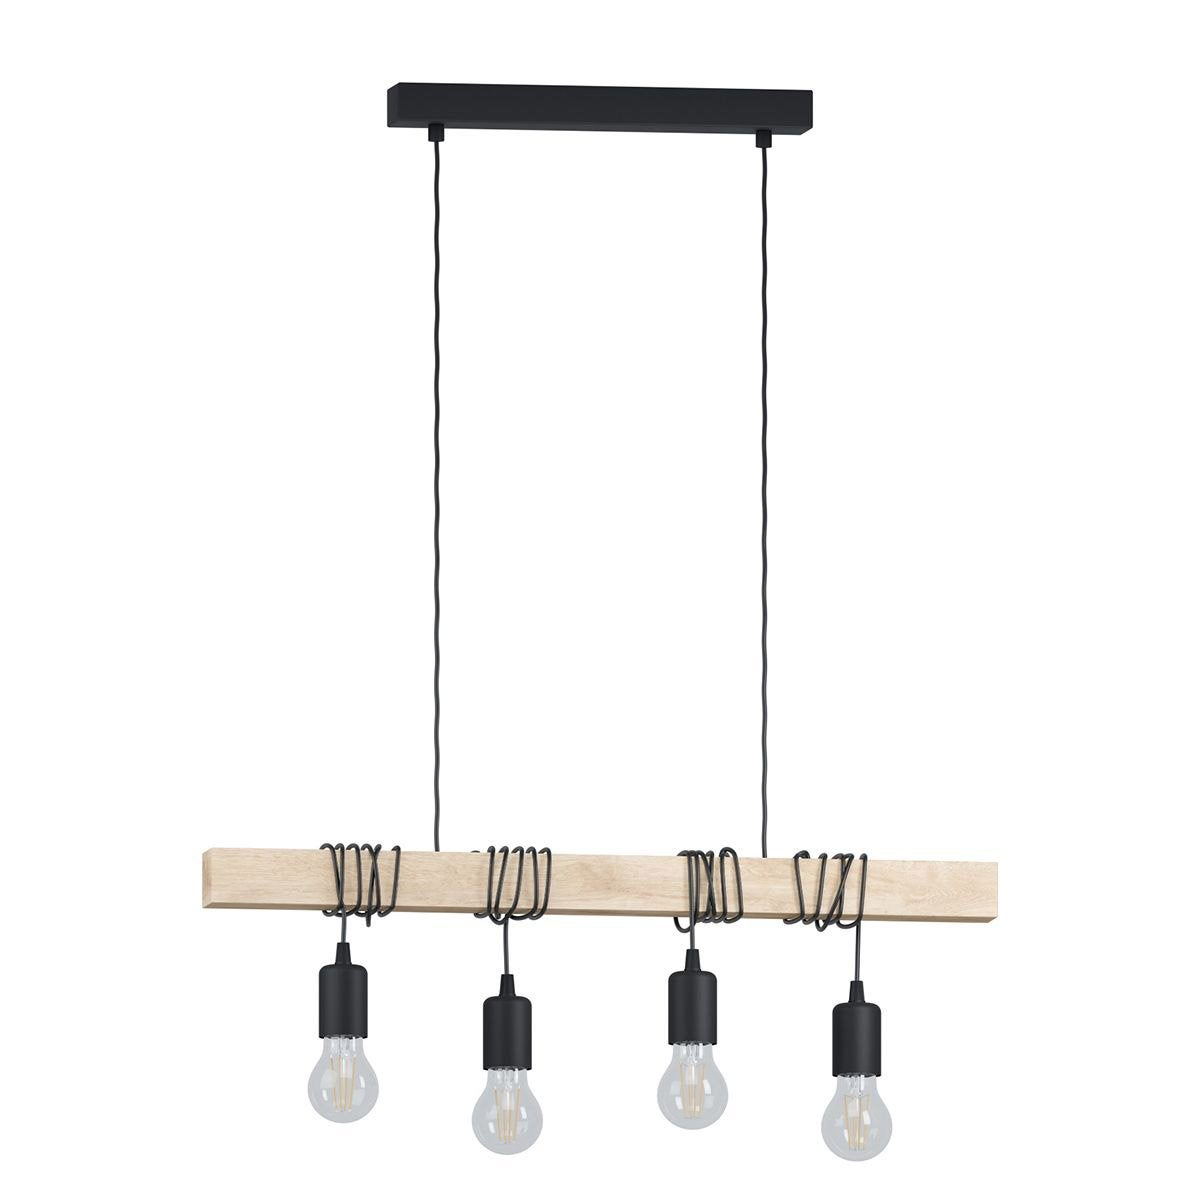 Suspension e27 design townshend bois noir 4 x 60 w eglo for Leroy merlin luminaire